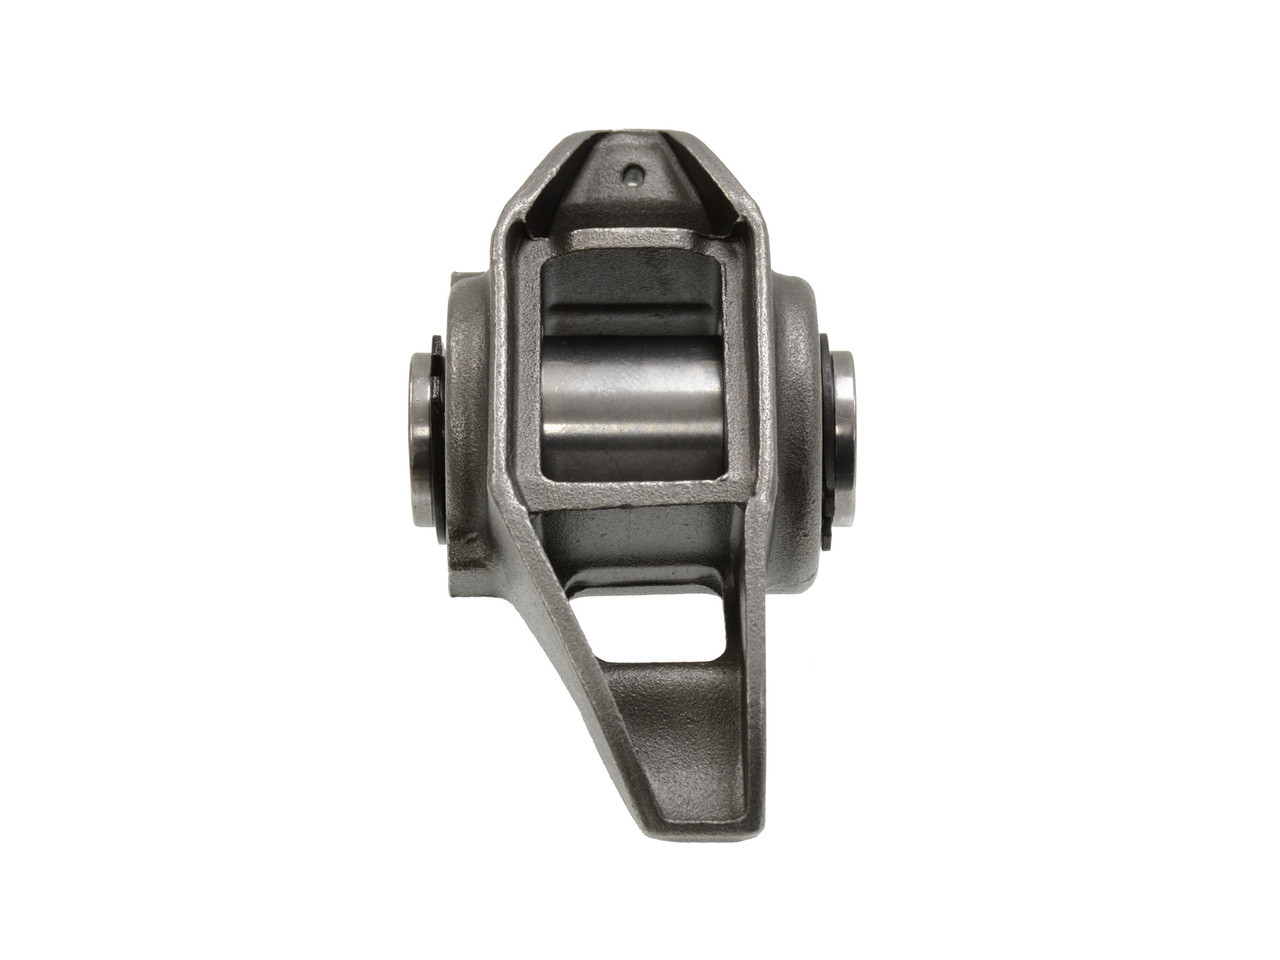 LS3 Rocker Arm with upgraded trunion - replaces 12569167